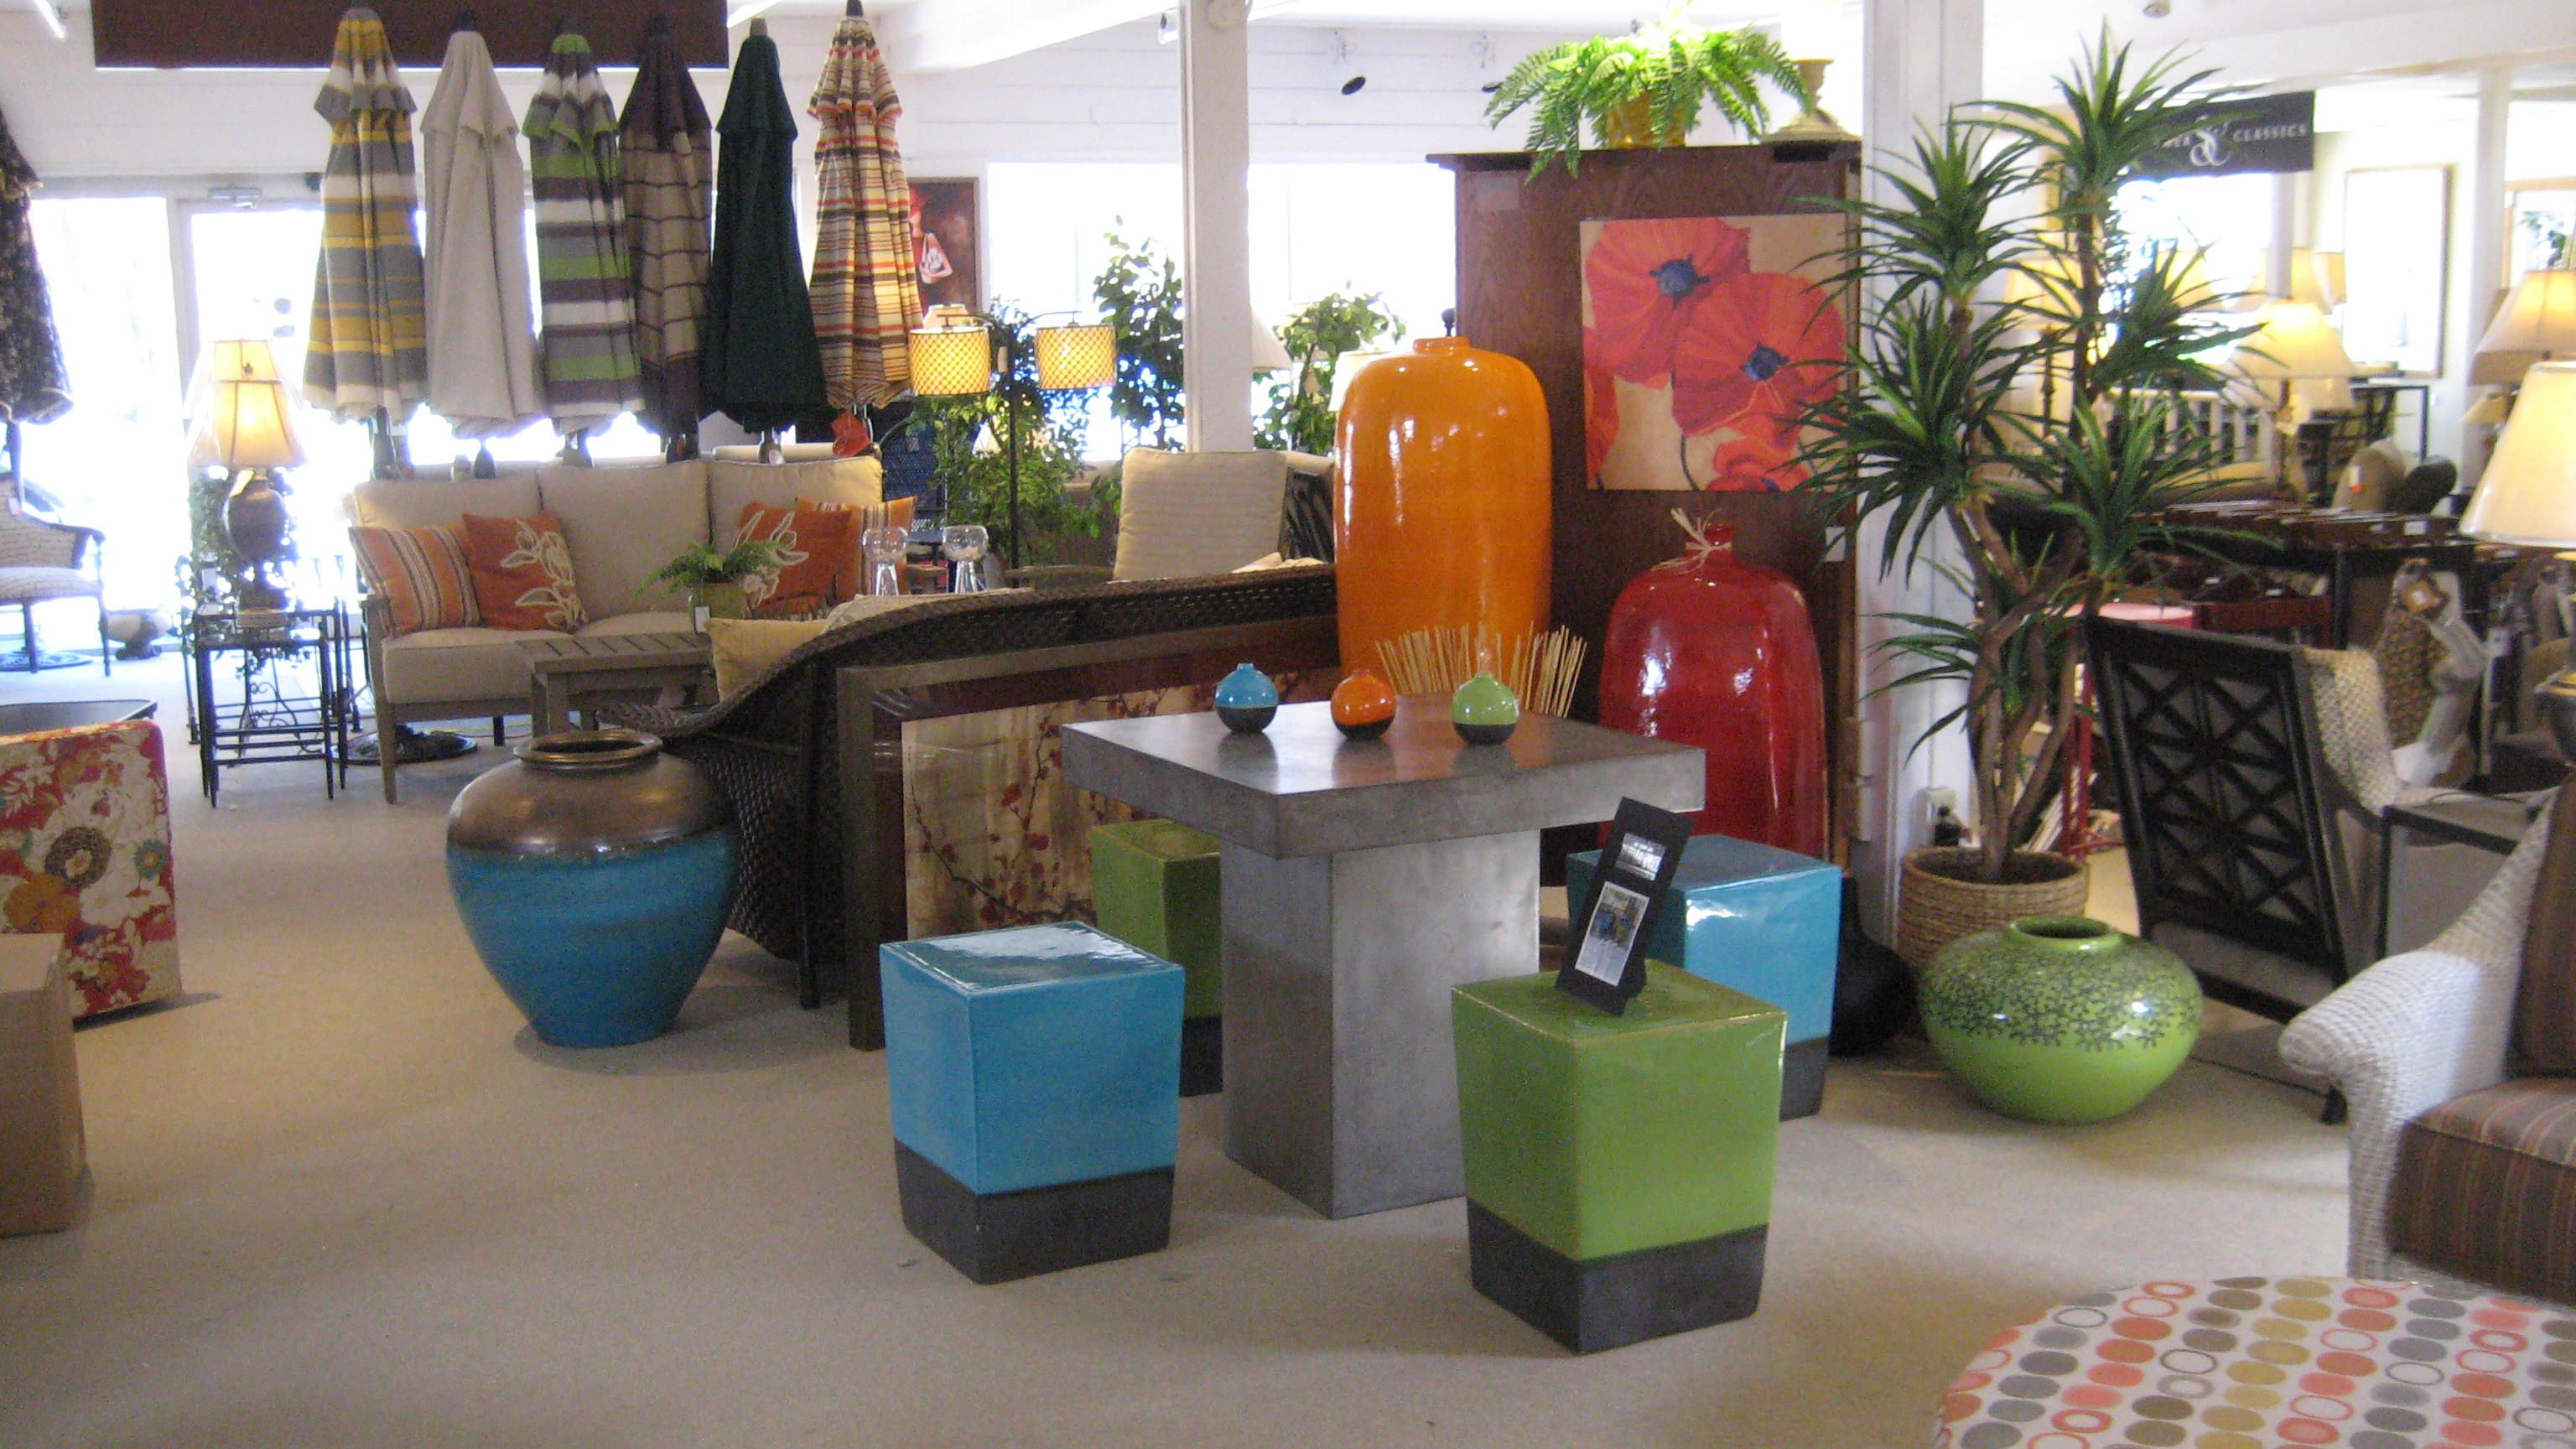 Seasonal Living Outdootr Furniture On Display At W. G. Arthurs Home  Furnishings In Orchard Park, NY